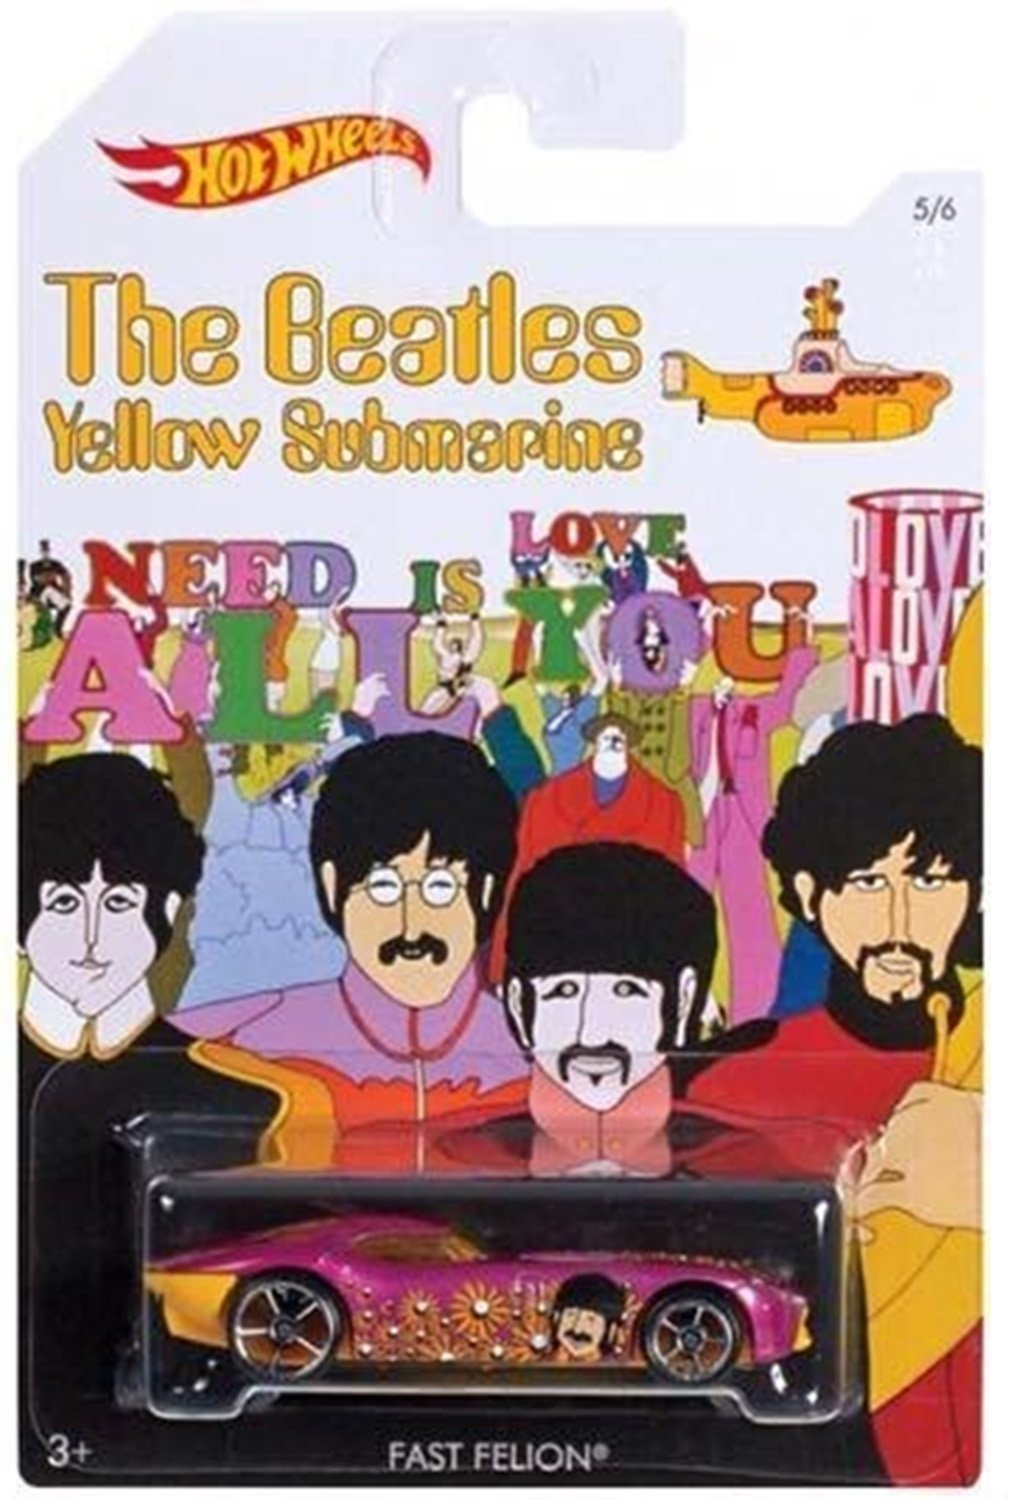 THE BEATLES YELLOW SUBMARINE Hot Wheels FAST FELION Die Cast Metal Car 5/6 OOP